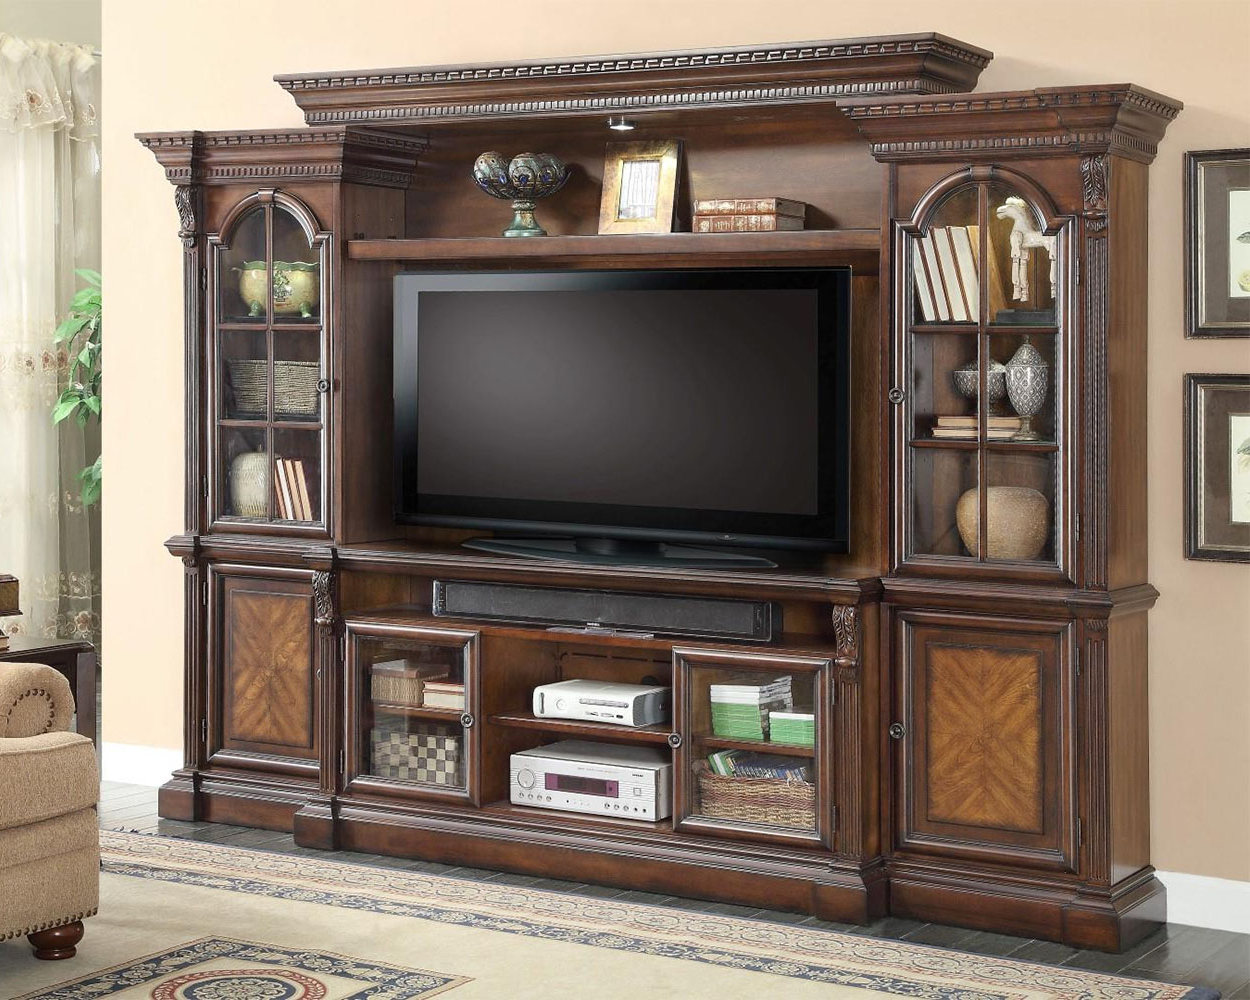 Fashionable Tv Entertainment Unit With Regard To Parker House 62In Tv Entertainment Center Wall Unit Marquis Ph Mar 100 4 (Gallery 17 of 20)